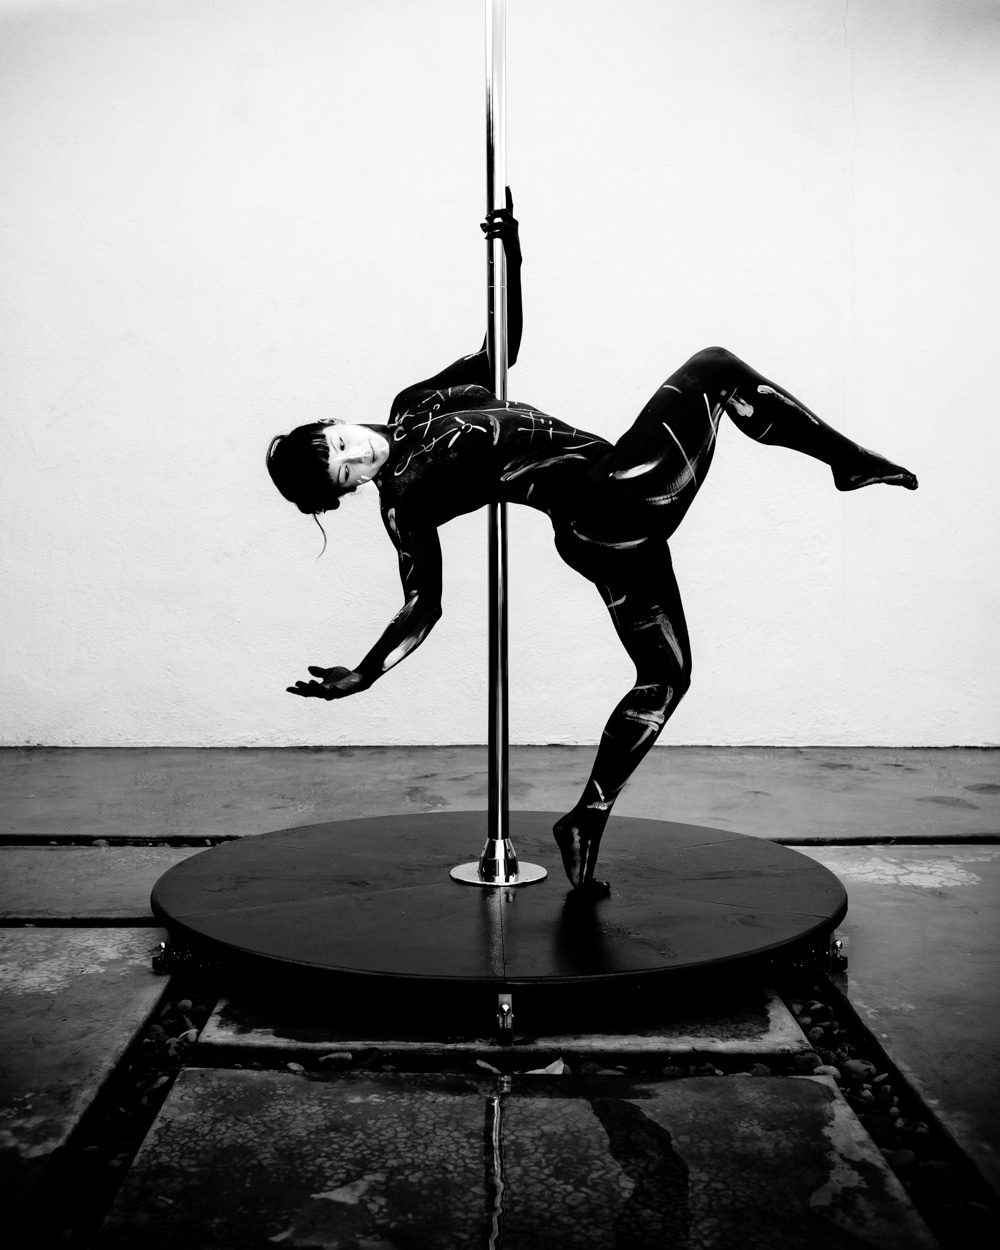 pole_dance_and_art_converge_gregory_beylerian-11